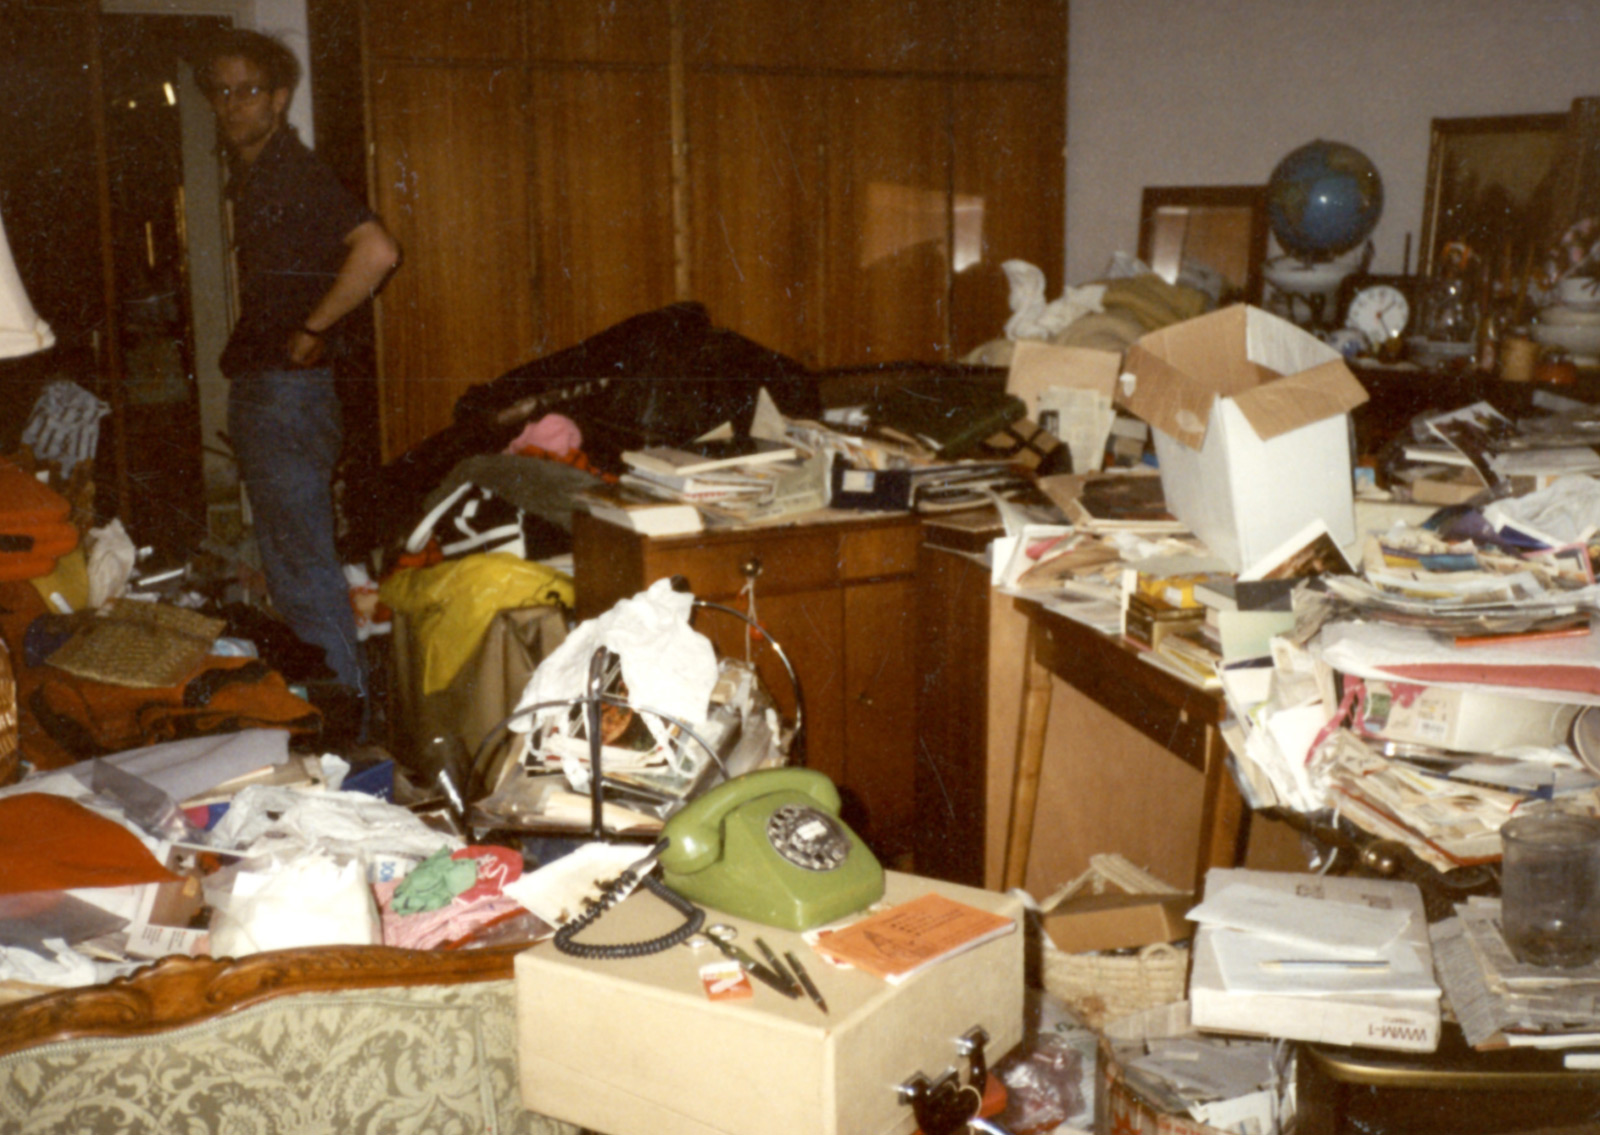 Compulsive hoarding in a private apartment